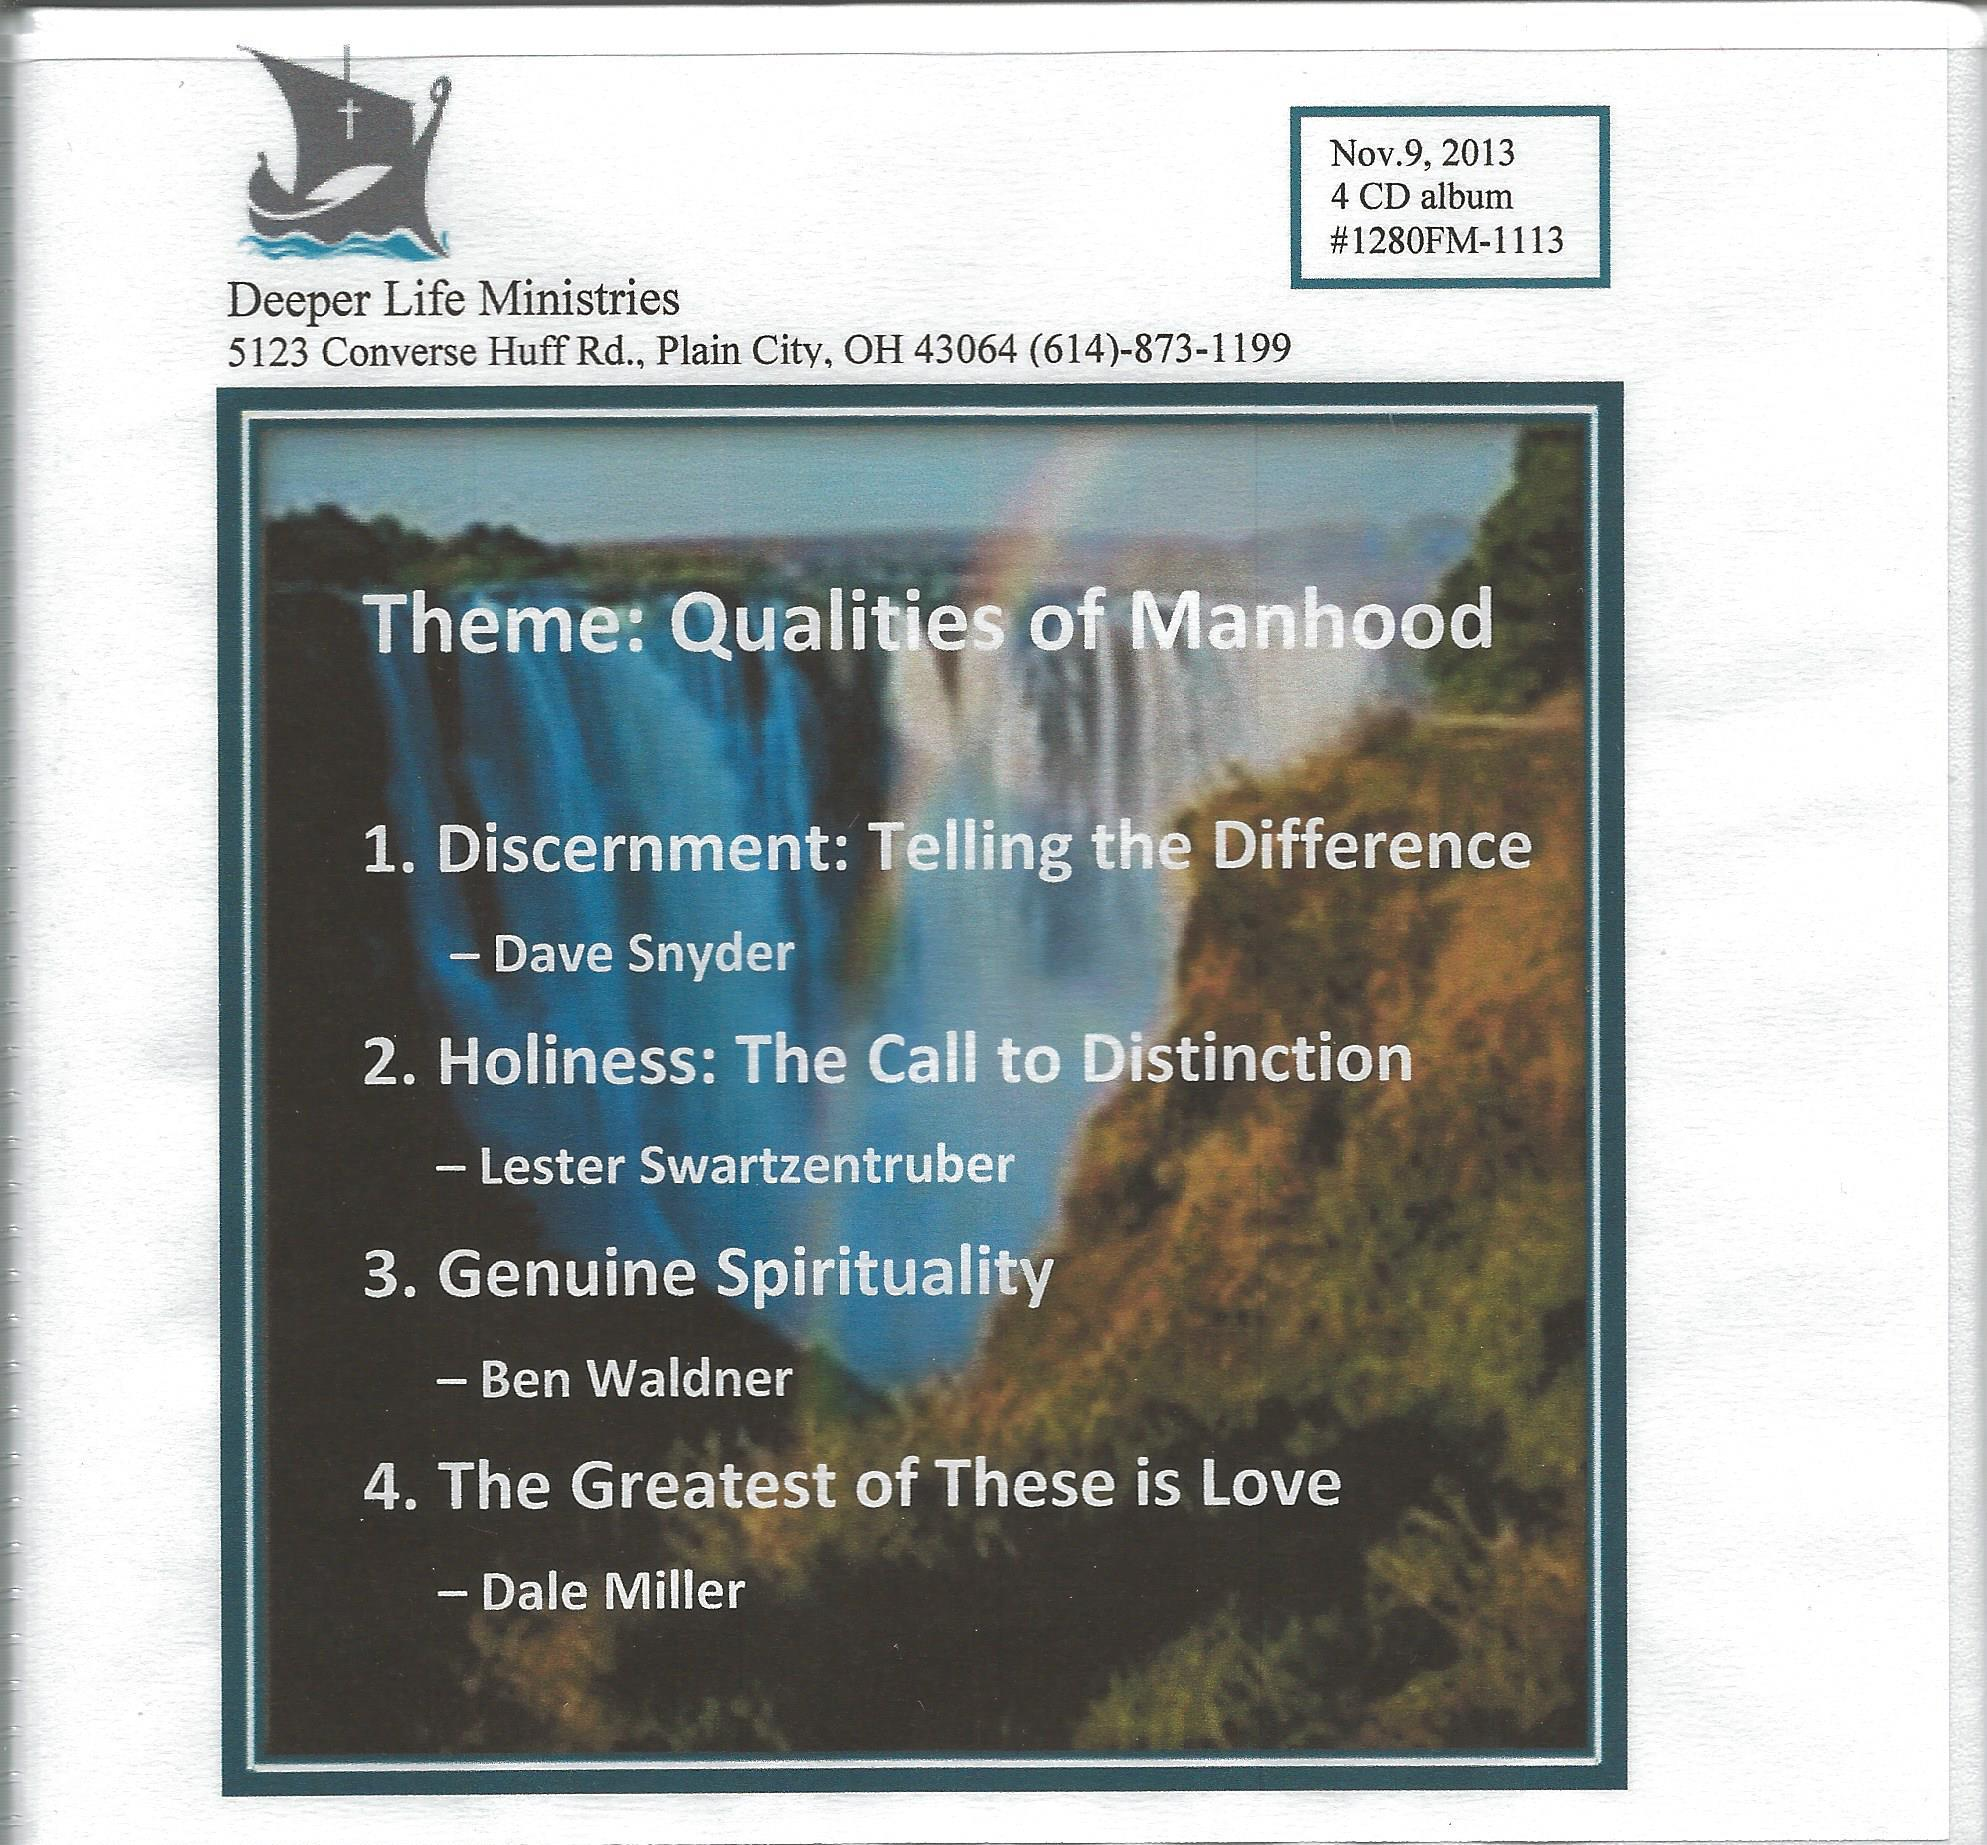 FAITHFUL MEN SEMINAR 2013 4 CD album